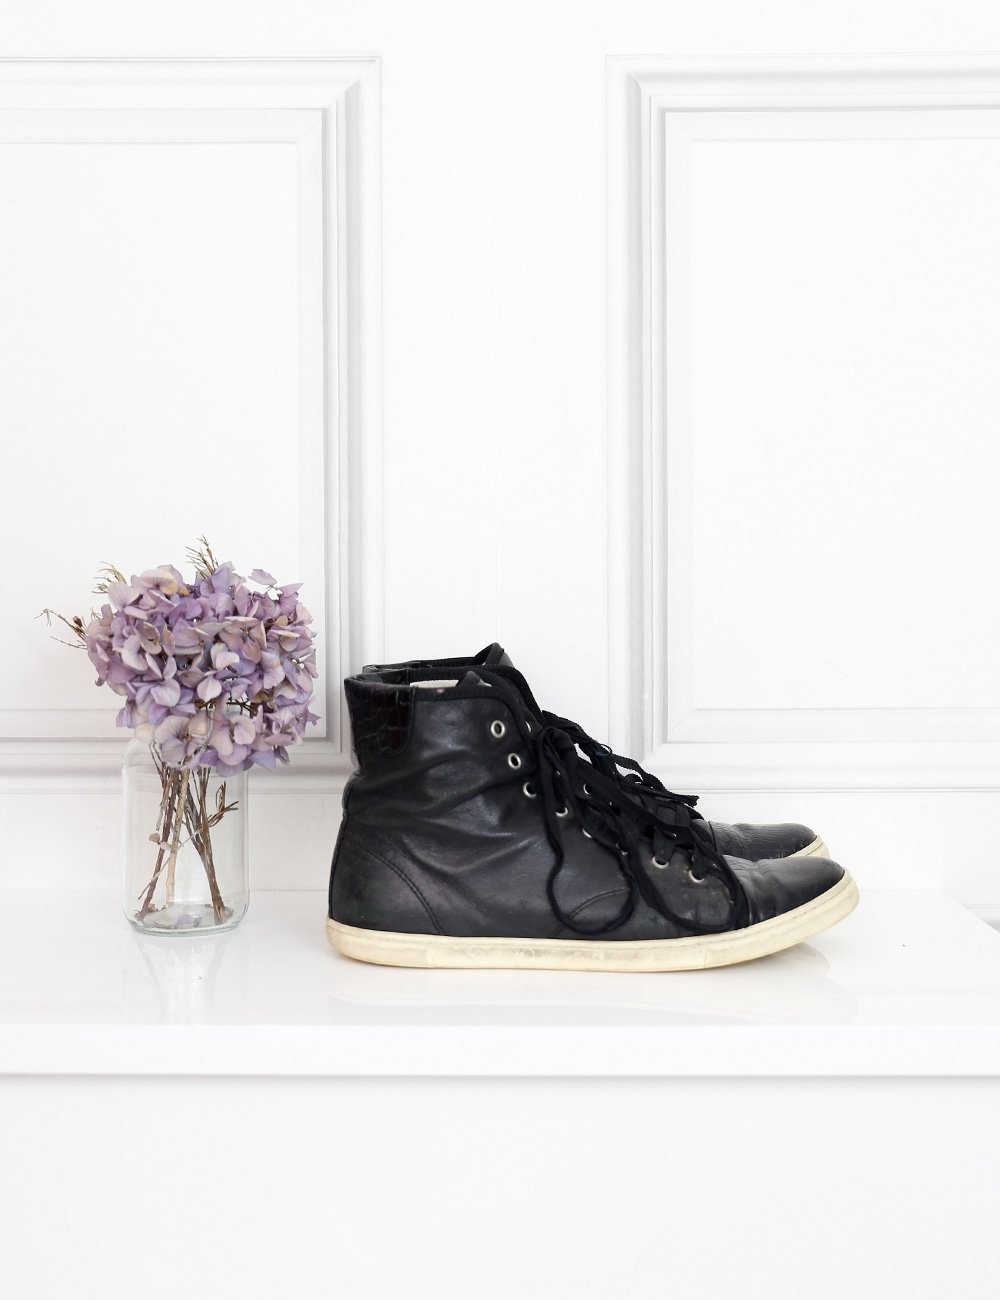 Lanvin black croc embossed cap toe high top sneakers 7Uk